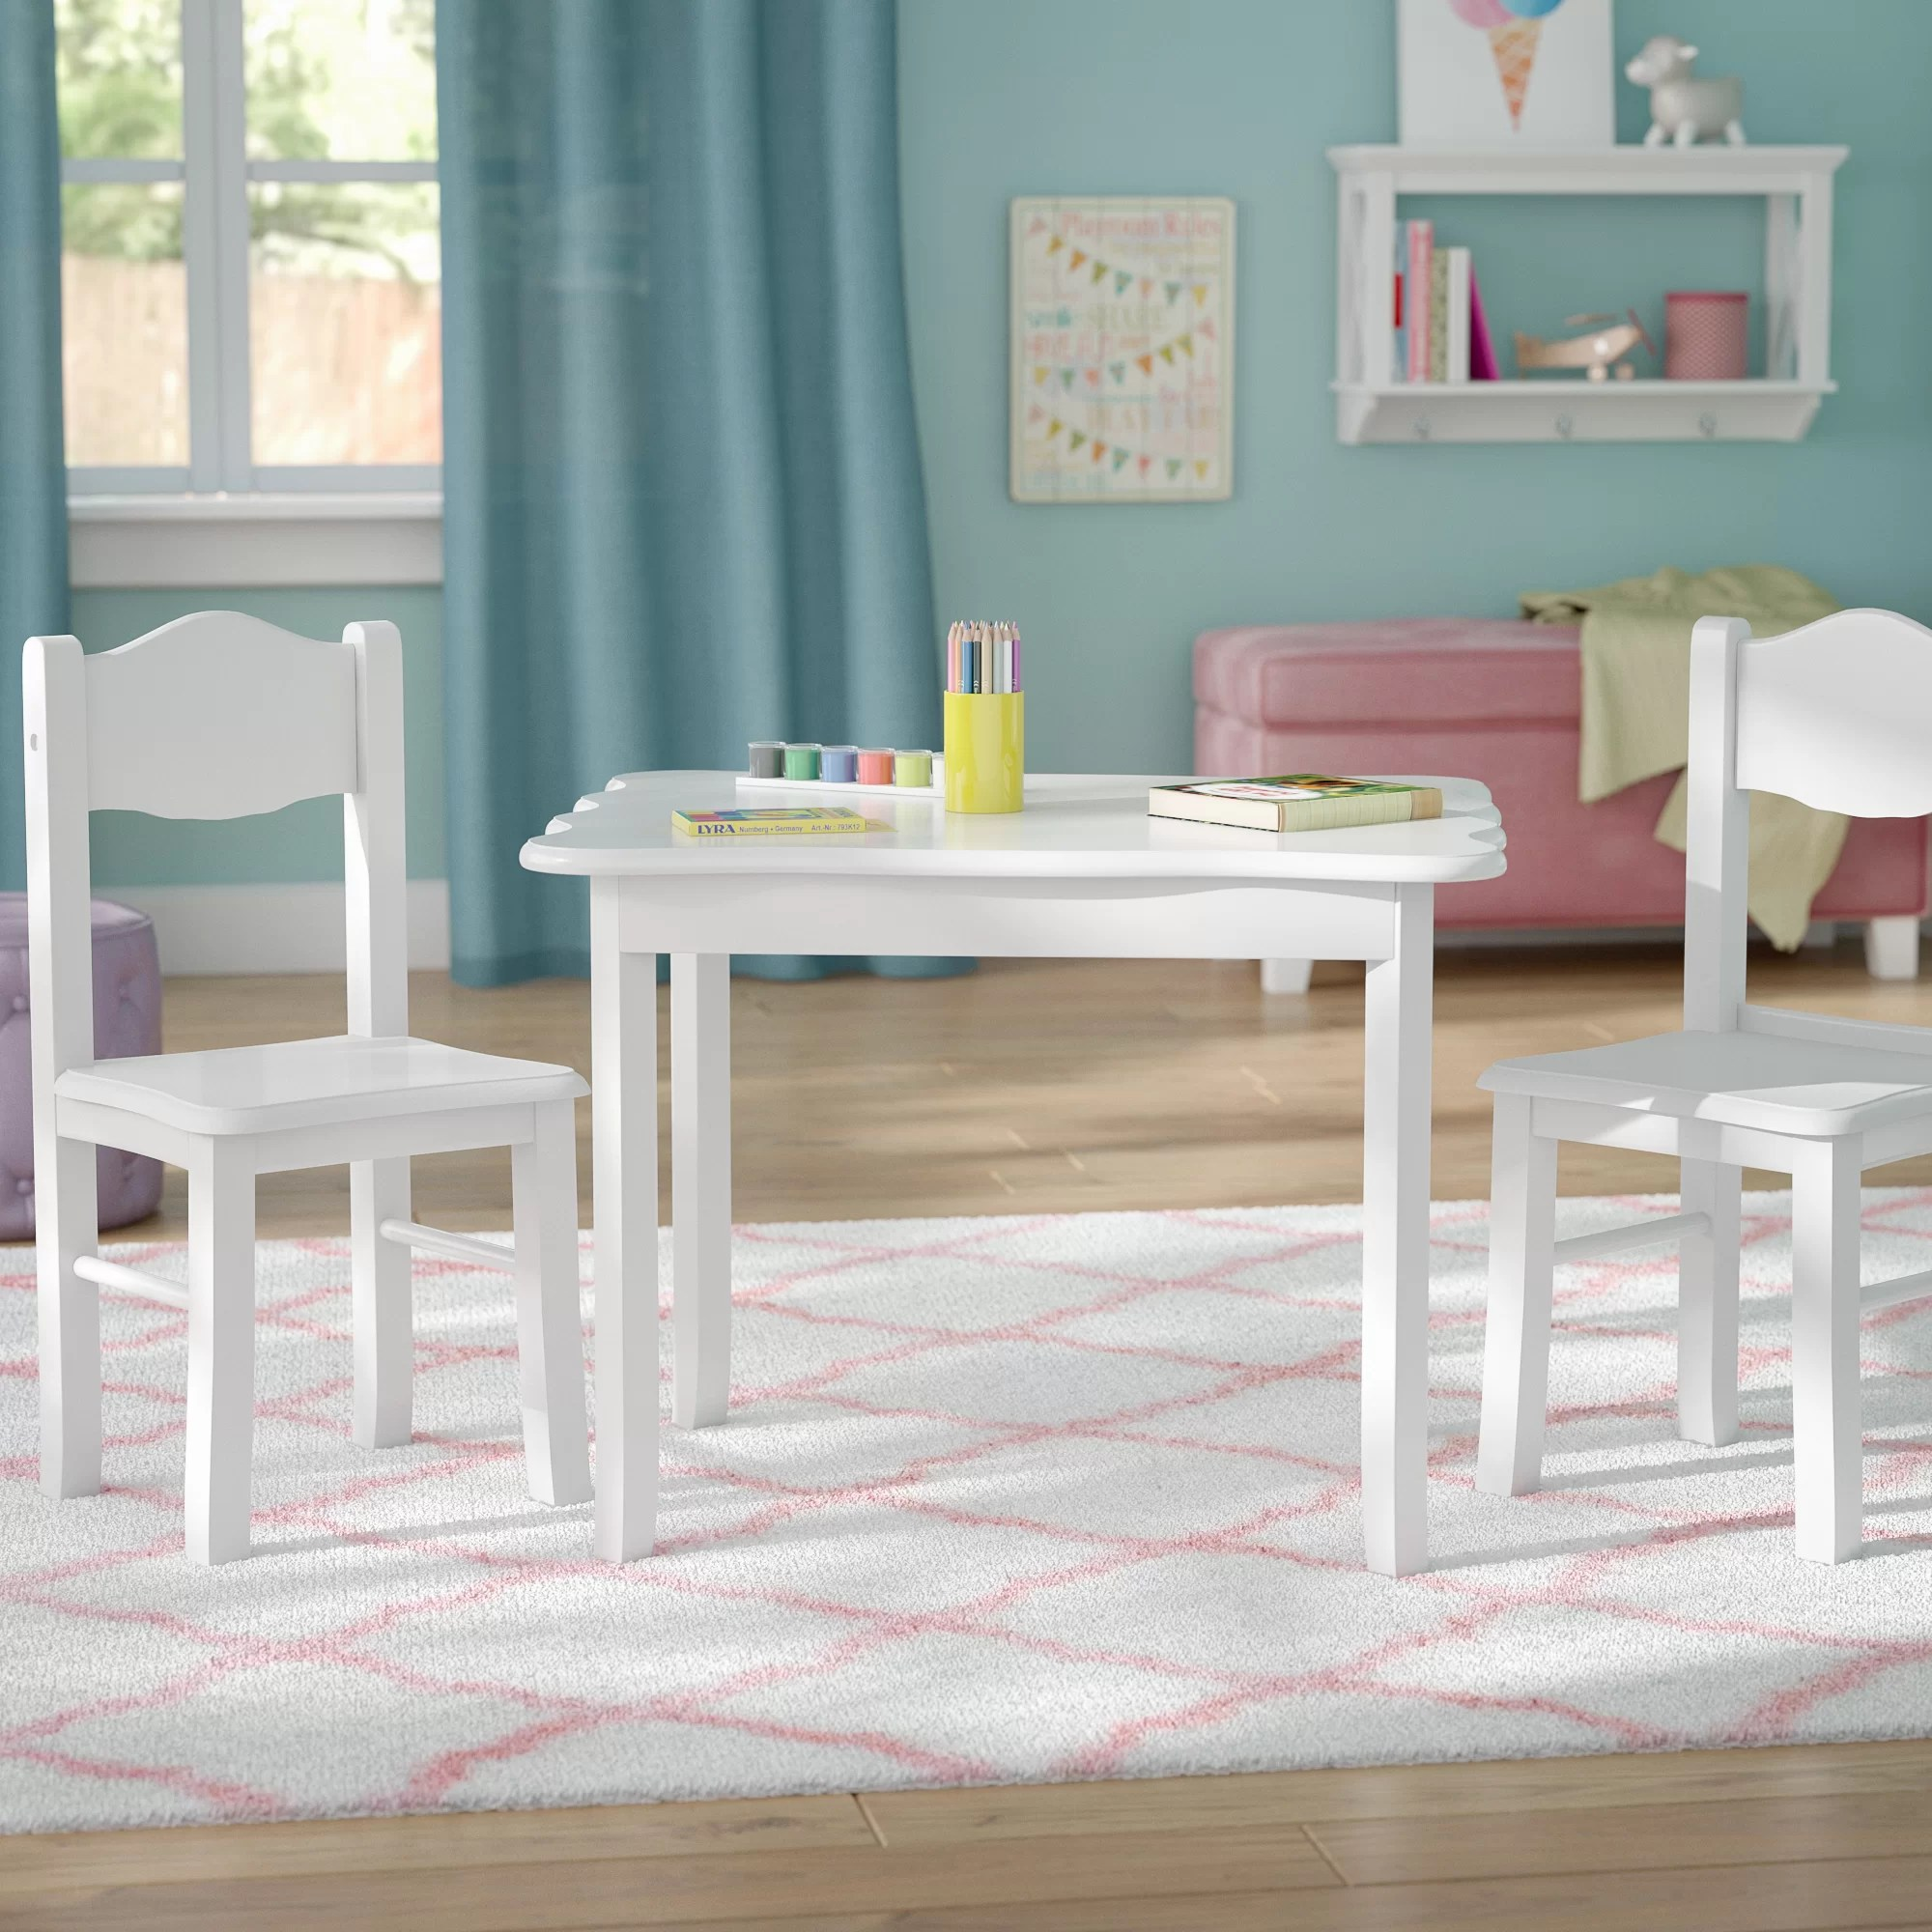 Childrens Table And Chair Set Kids Table And Chairs You Ll Love Wayfair